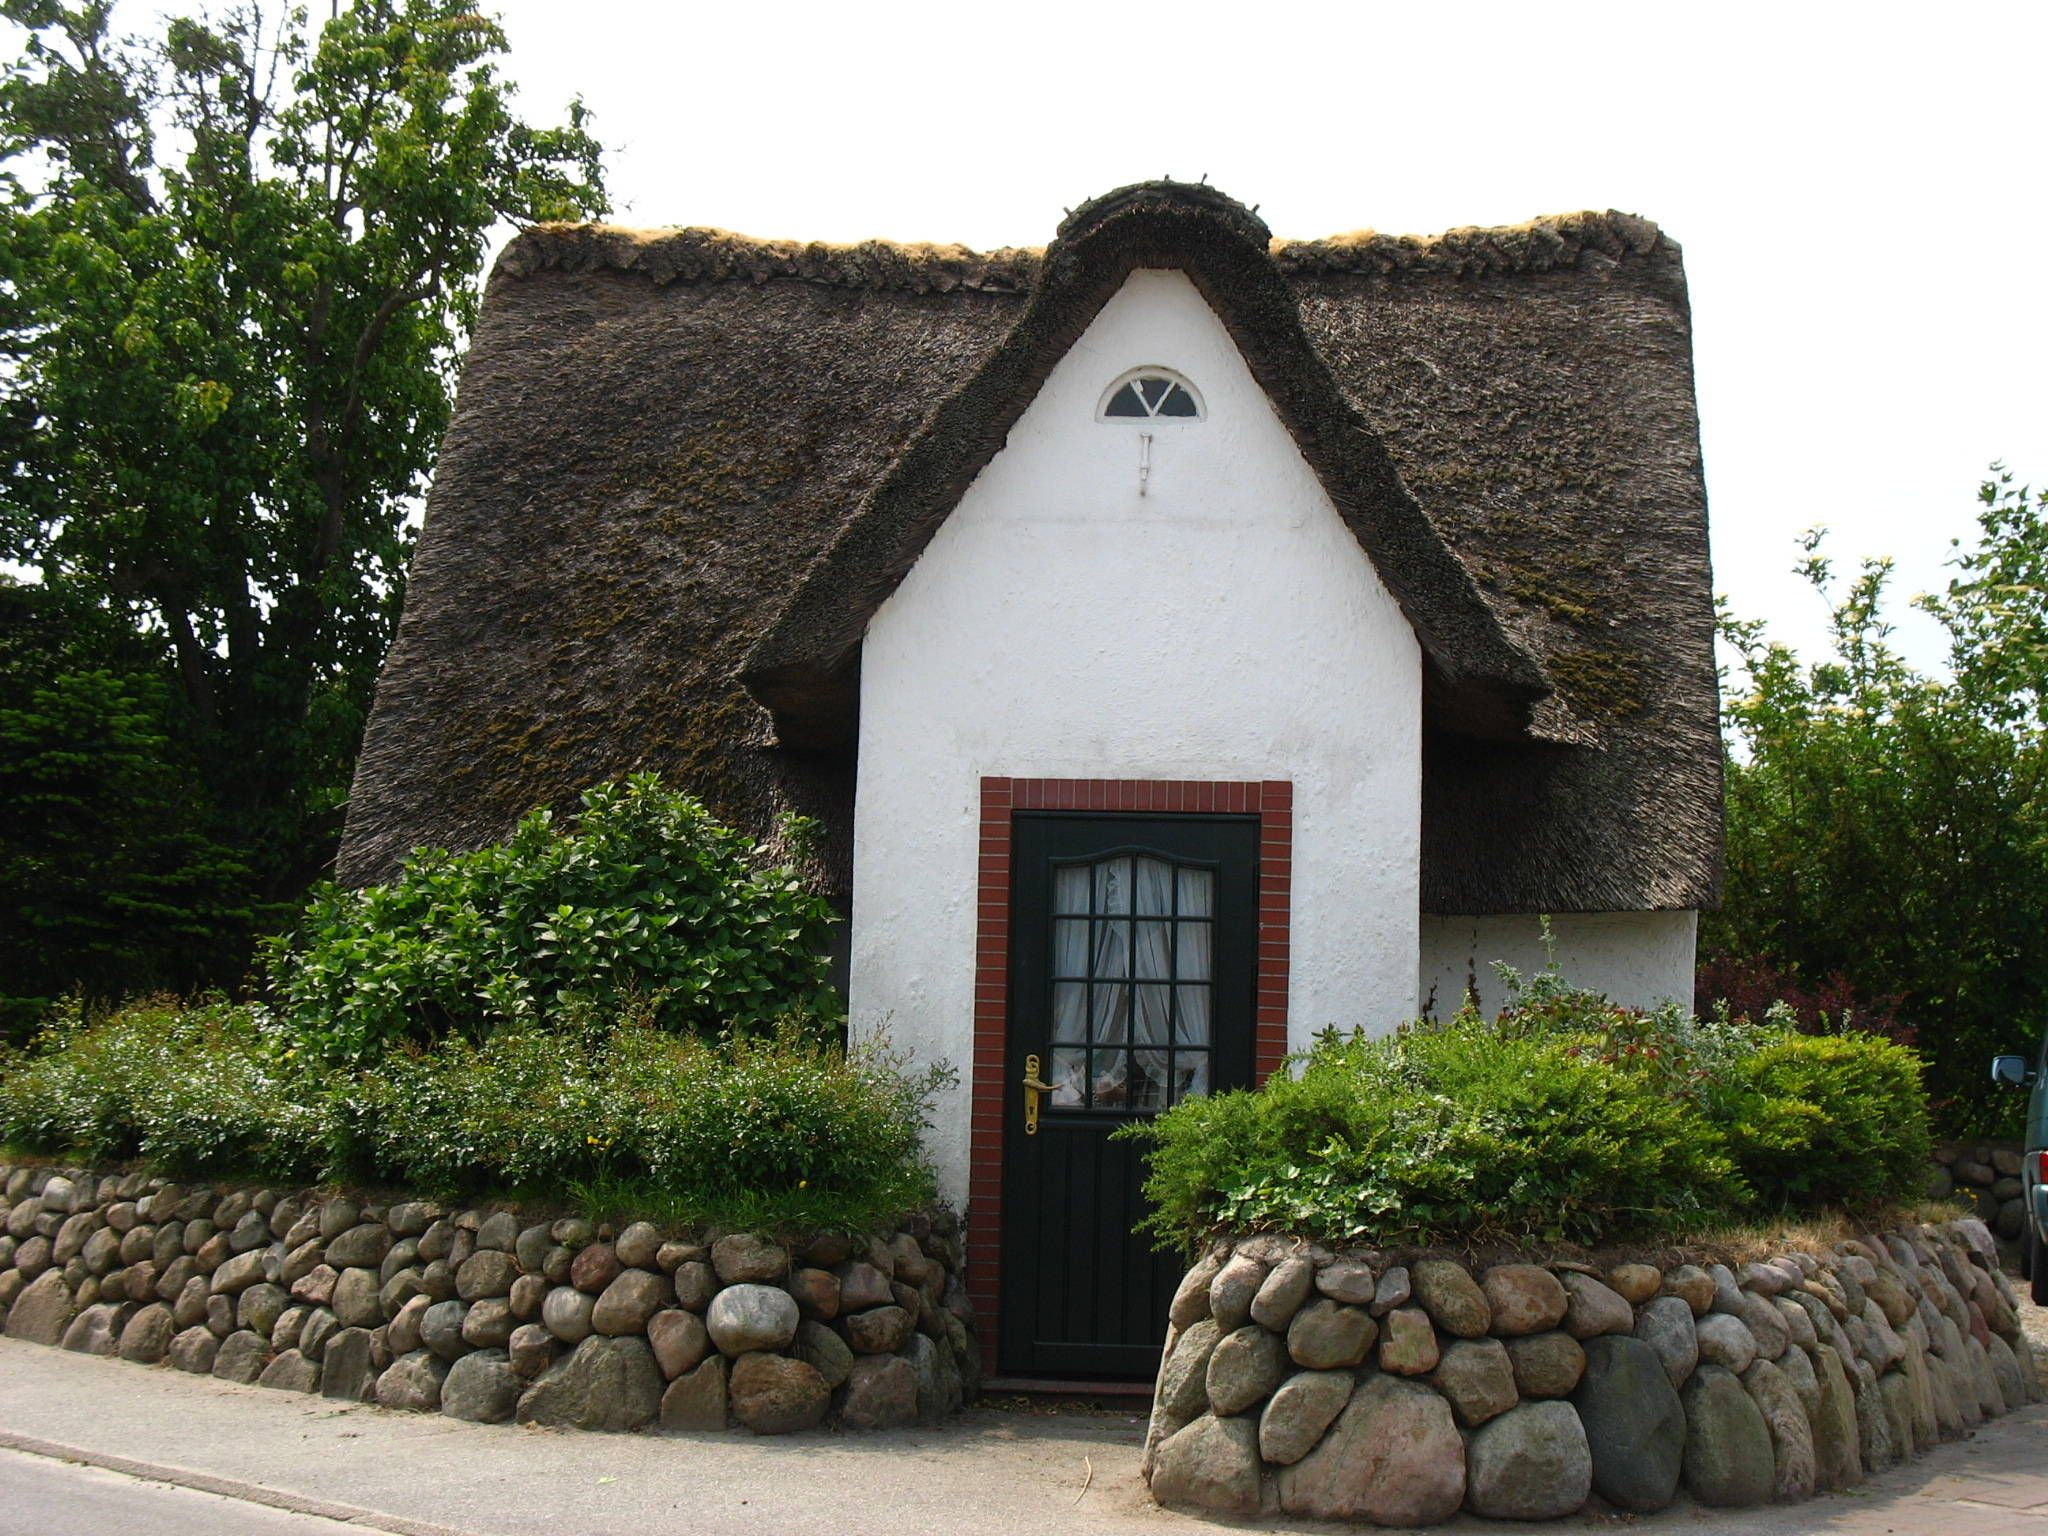 thatched roof houses on pinterest cottages fairytale. Black Bedroom Furniture Sets. Home Design Ideas